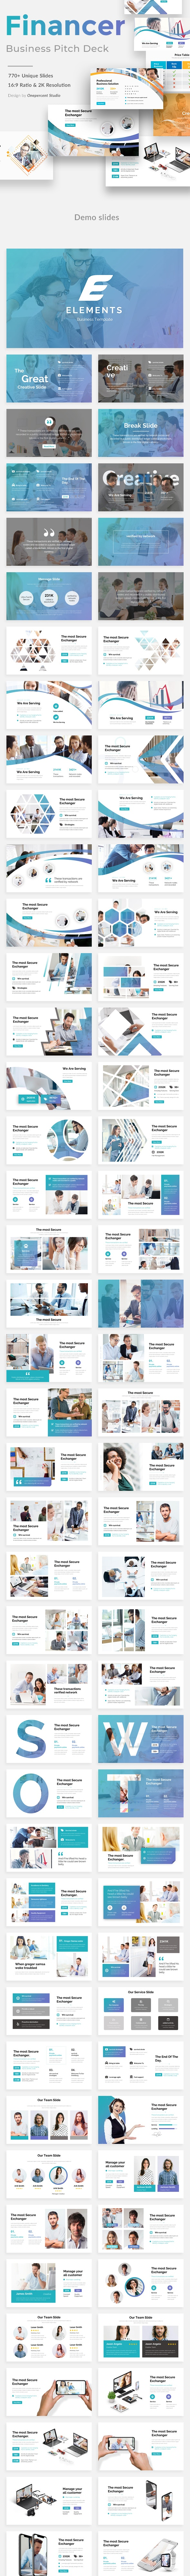 Finaner Pitch Deck 3 in 1 Bundle Powerpoint Template - Business PowerPoint Templates